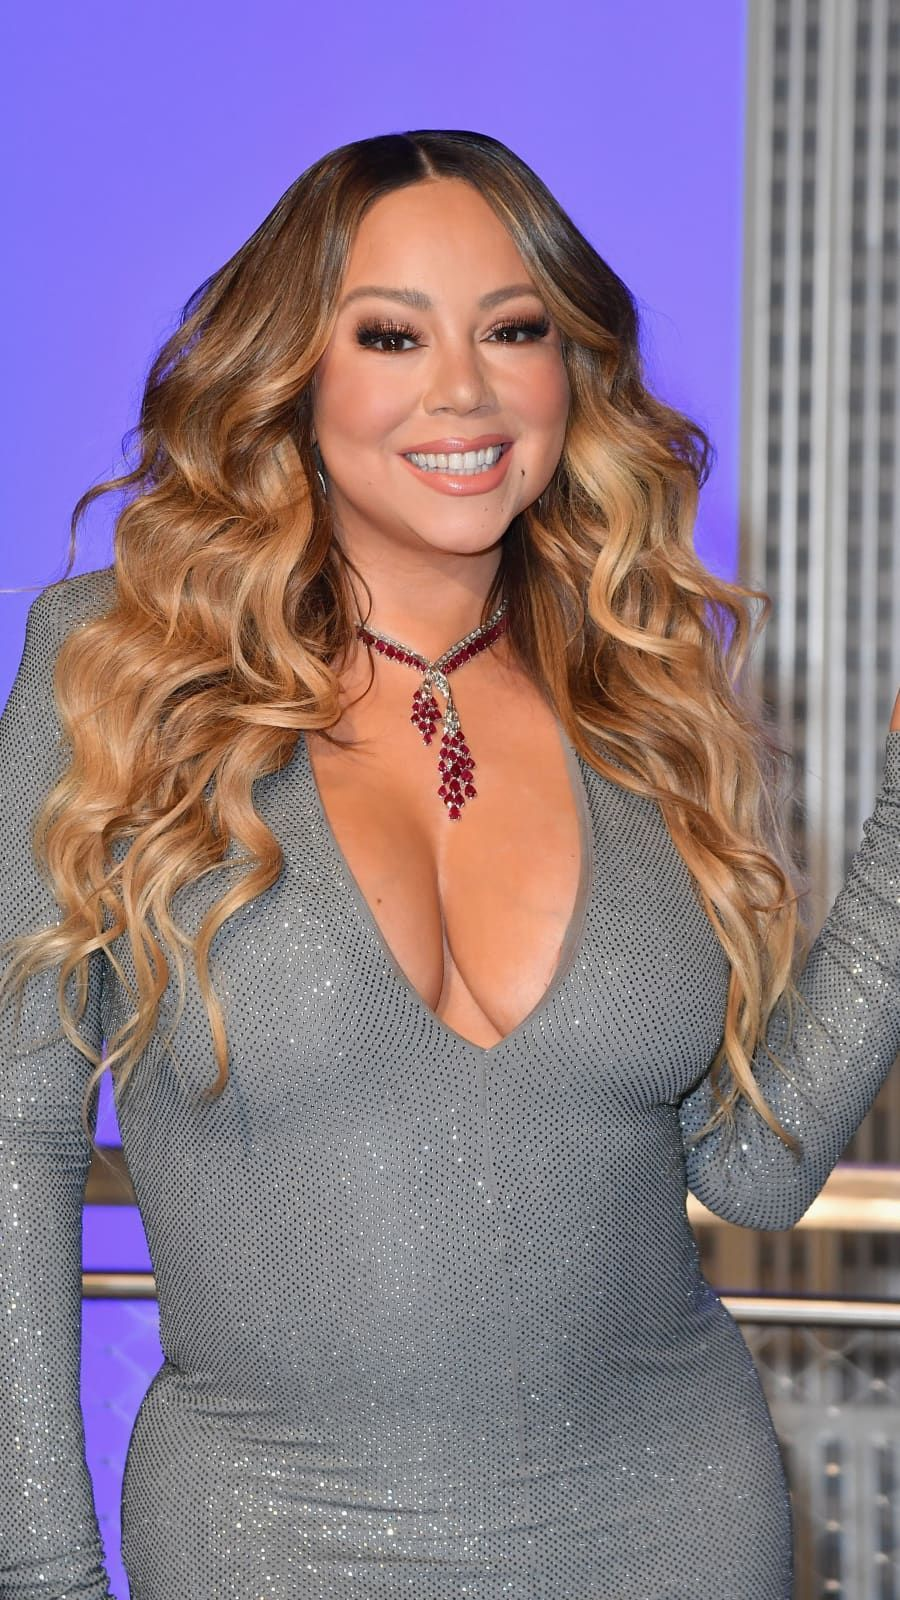 Mariah Carey Participates In The Ceremonial Lighting Of The Empire State Building In Celebration Of The 25th Anniversary Of In 2020 Mariah Carey Mariah Celebrity Moms